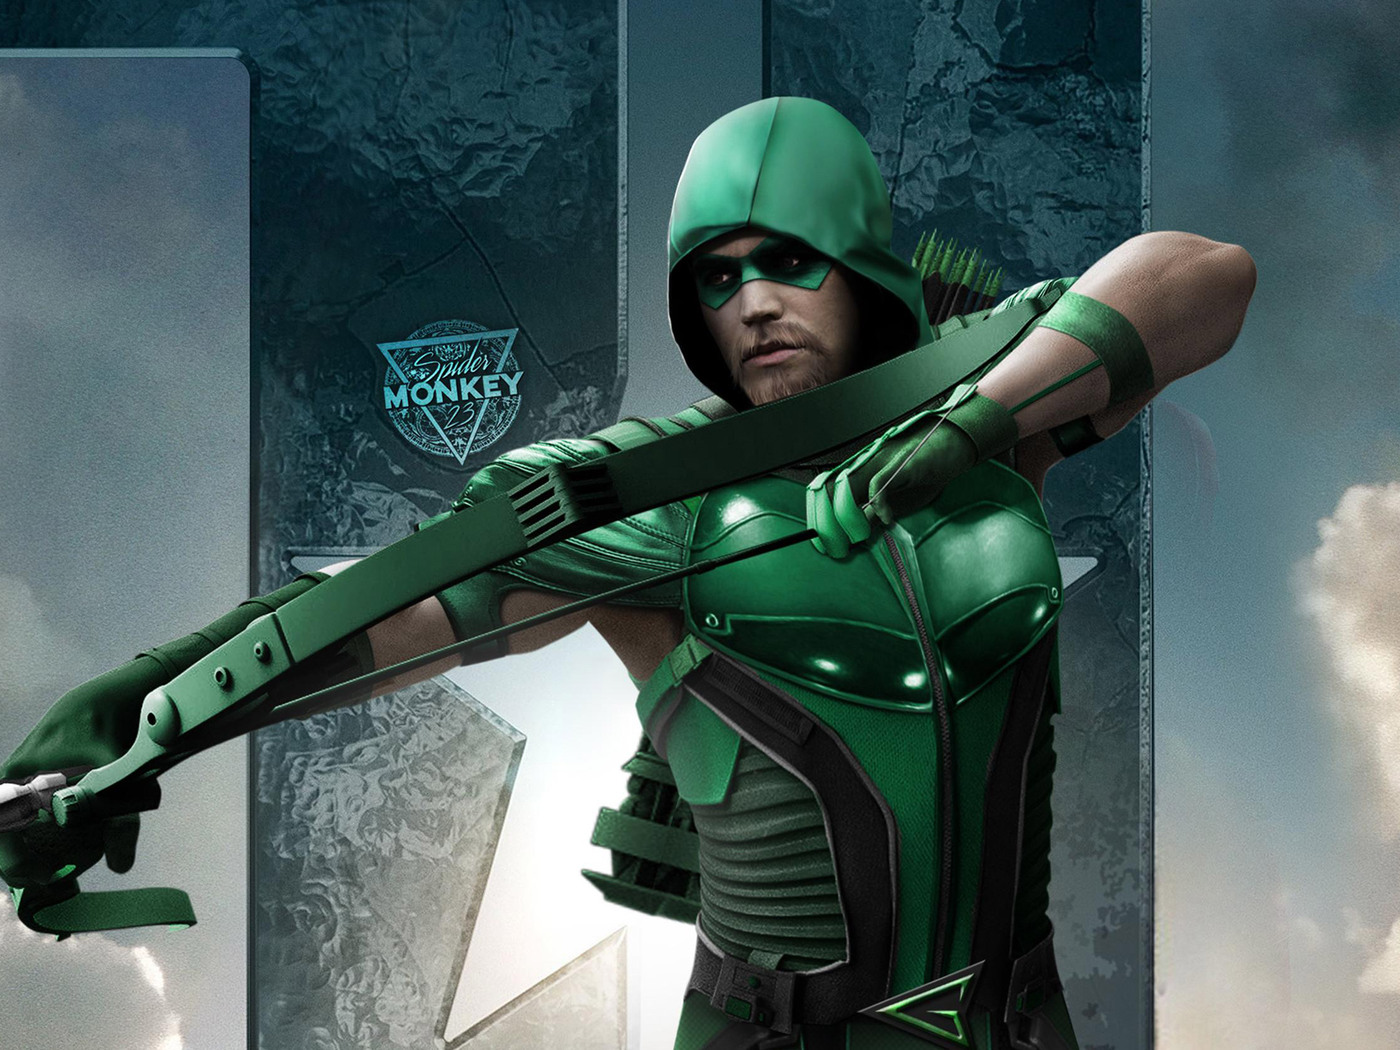 arrow-justice-league-fan-art-x3.jpg